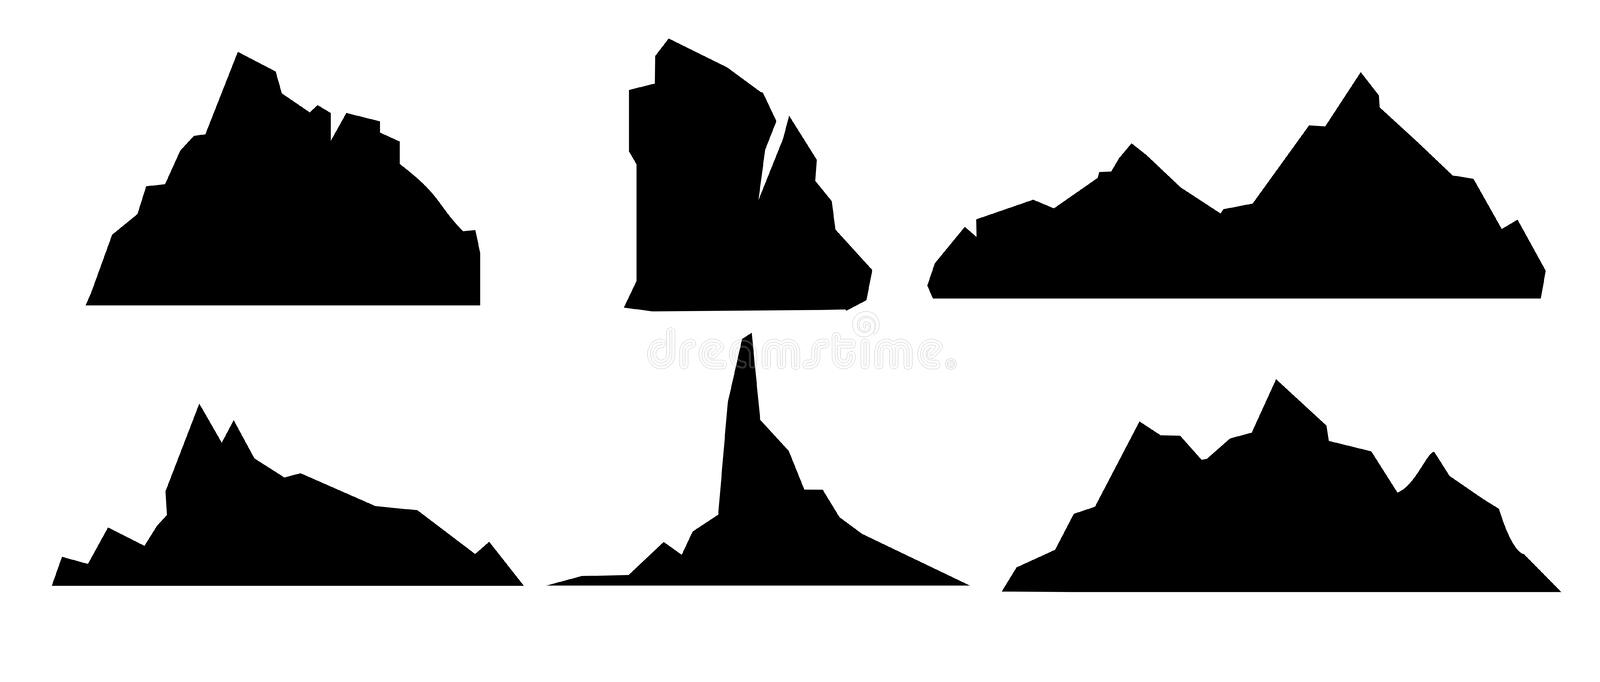 Vector illustration set of black and mountain silhouettes, background border of rocky mountains on white background in stock illustration